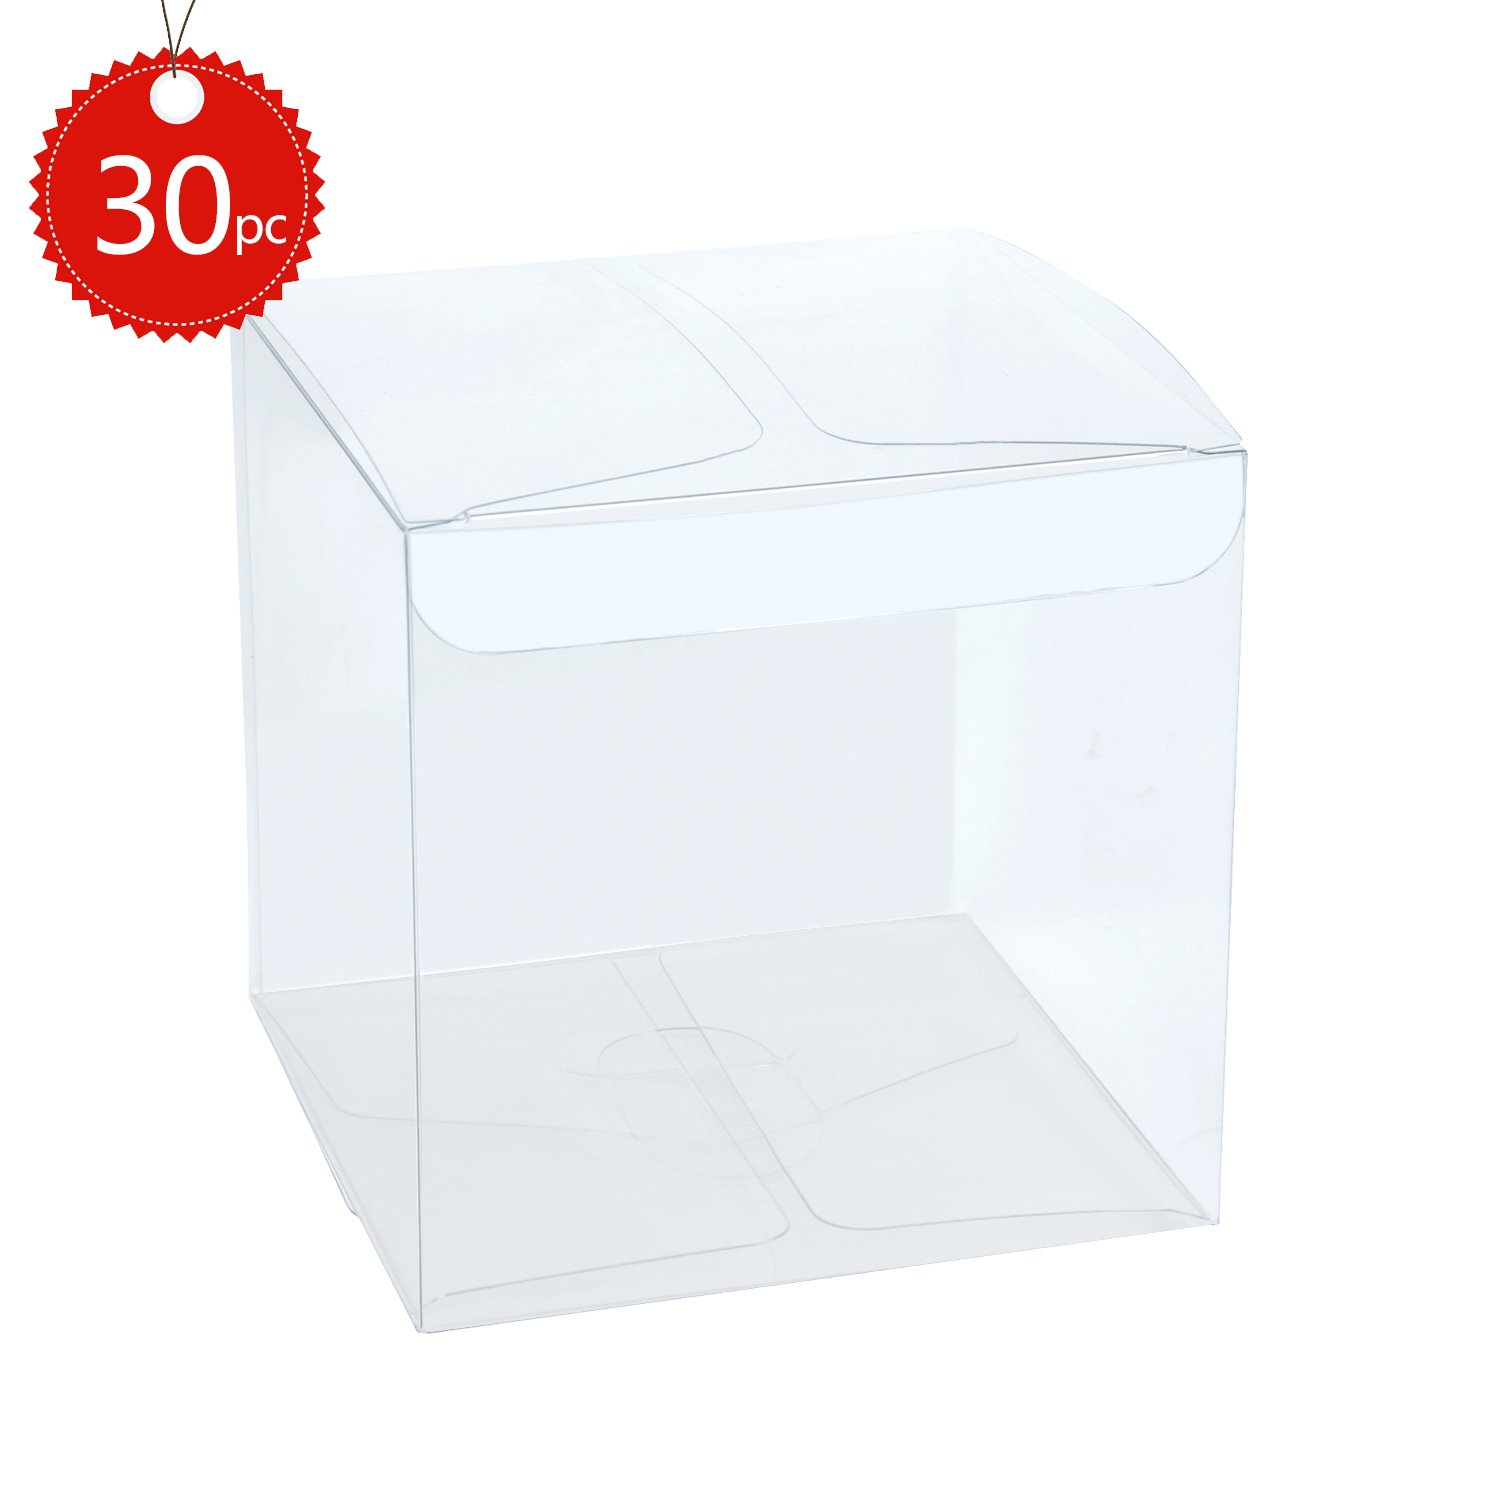 Amazon.com: ClearBags Clear Gift Boxes | Clear PET Plastic Boxes for ...